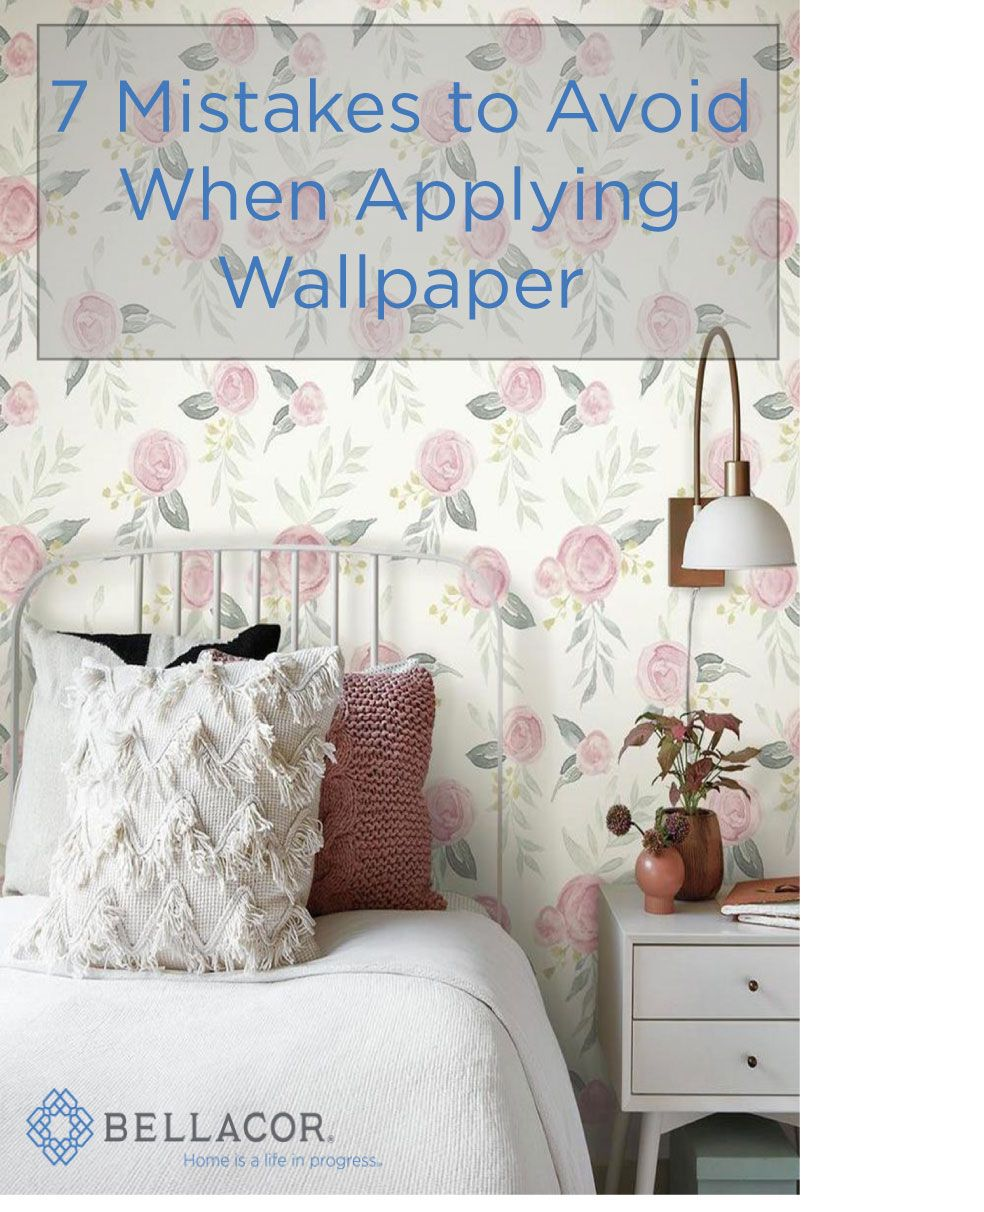 How To Fix Wallpaper Mistakes Wallpaper How To Install Wallpaper Bellacor